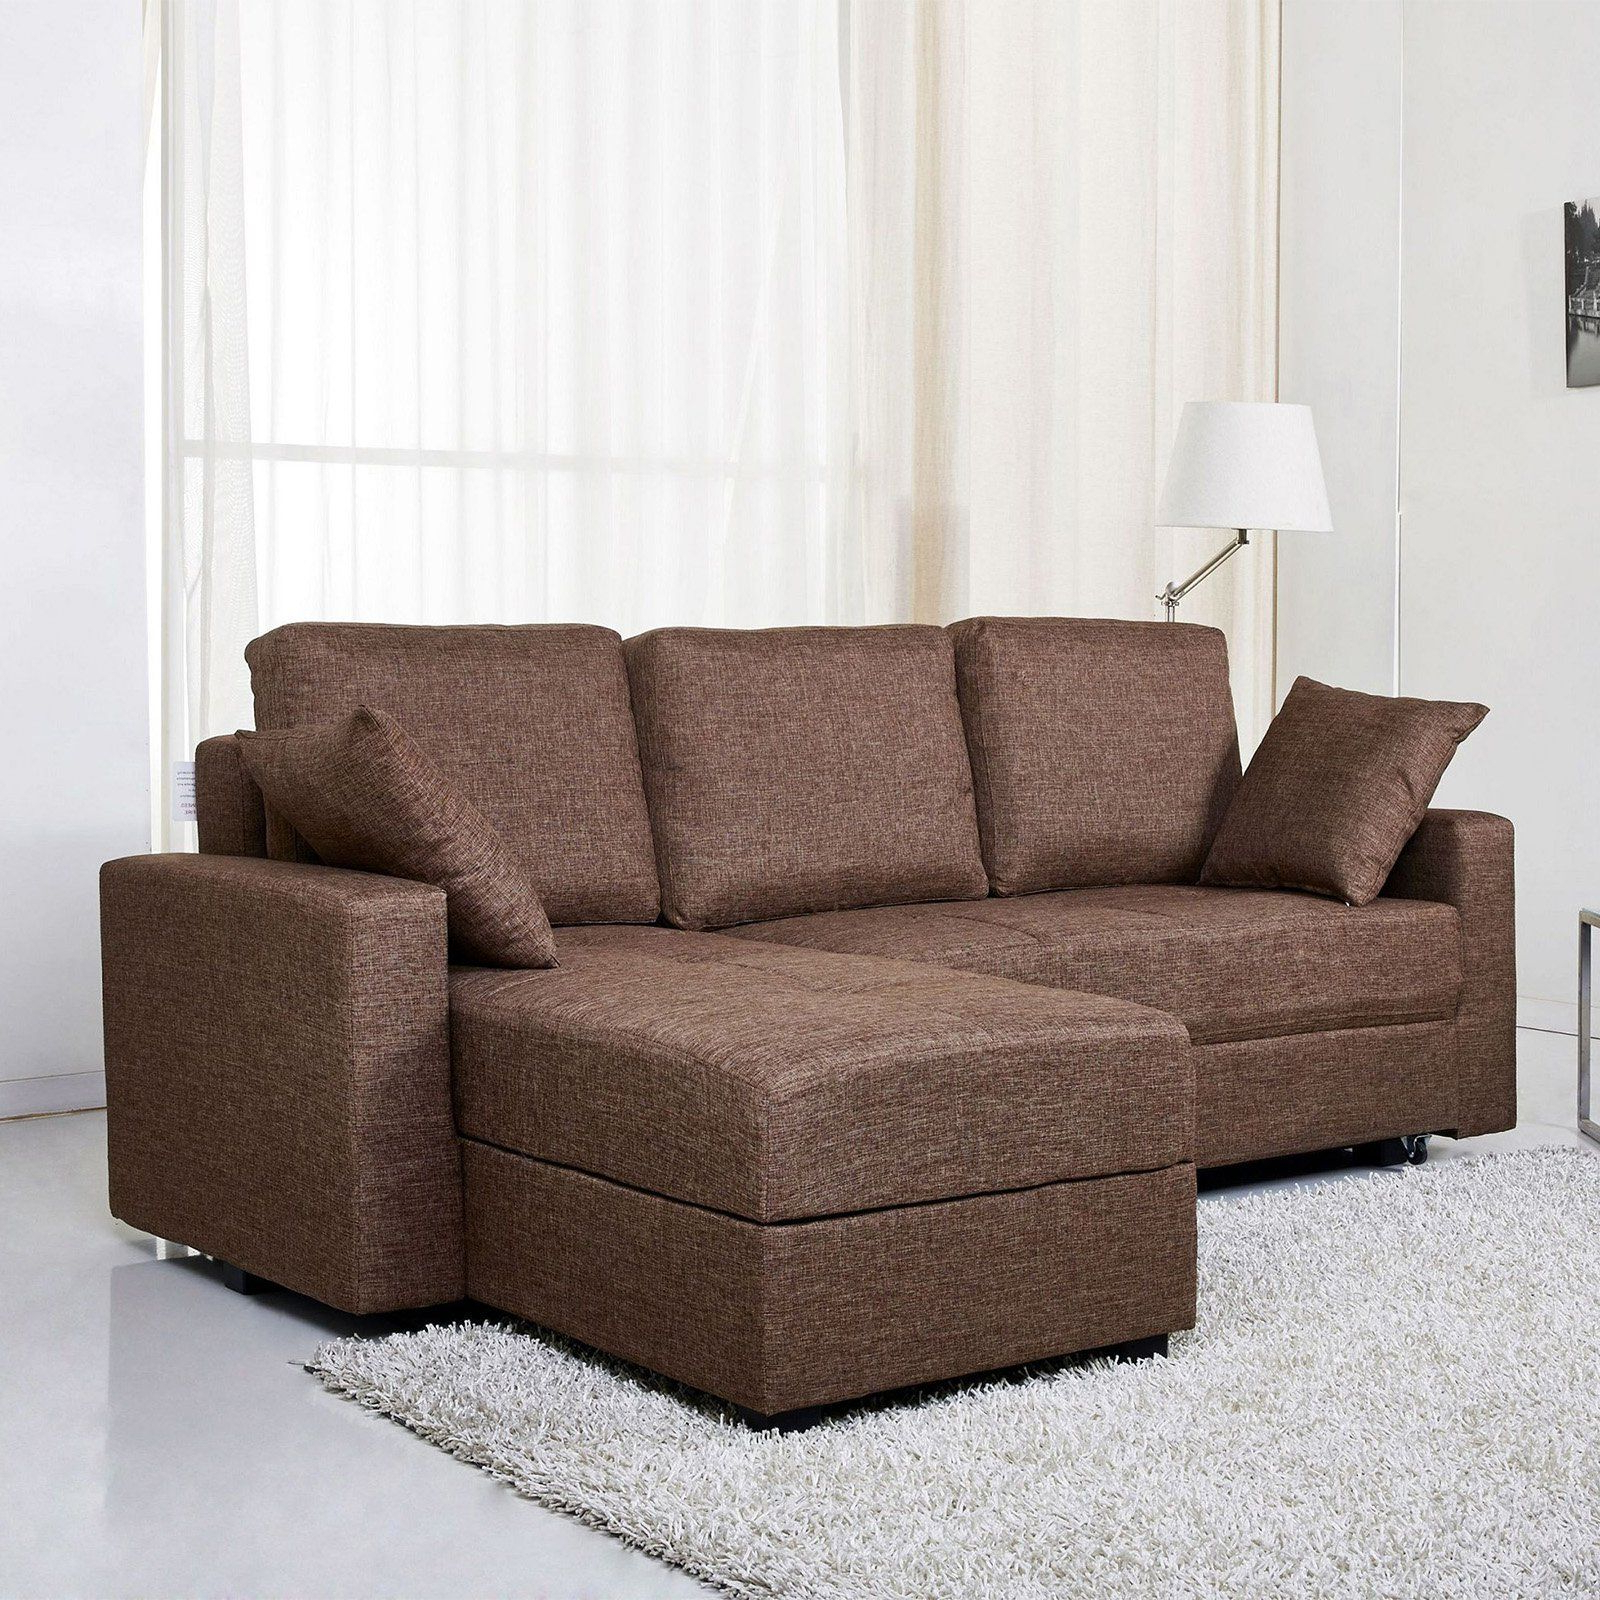 Most Up To Date Gold Sparrow Aspen Fabric Convertible Storage Sectional Inside Live It Cozy Sectional Sofa Beds With Storage (View 10 of 20)